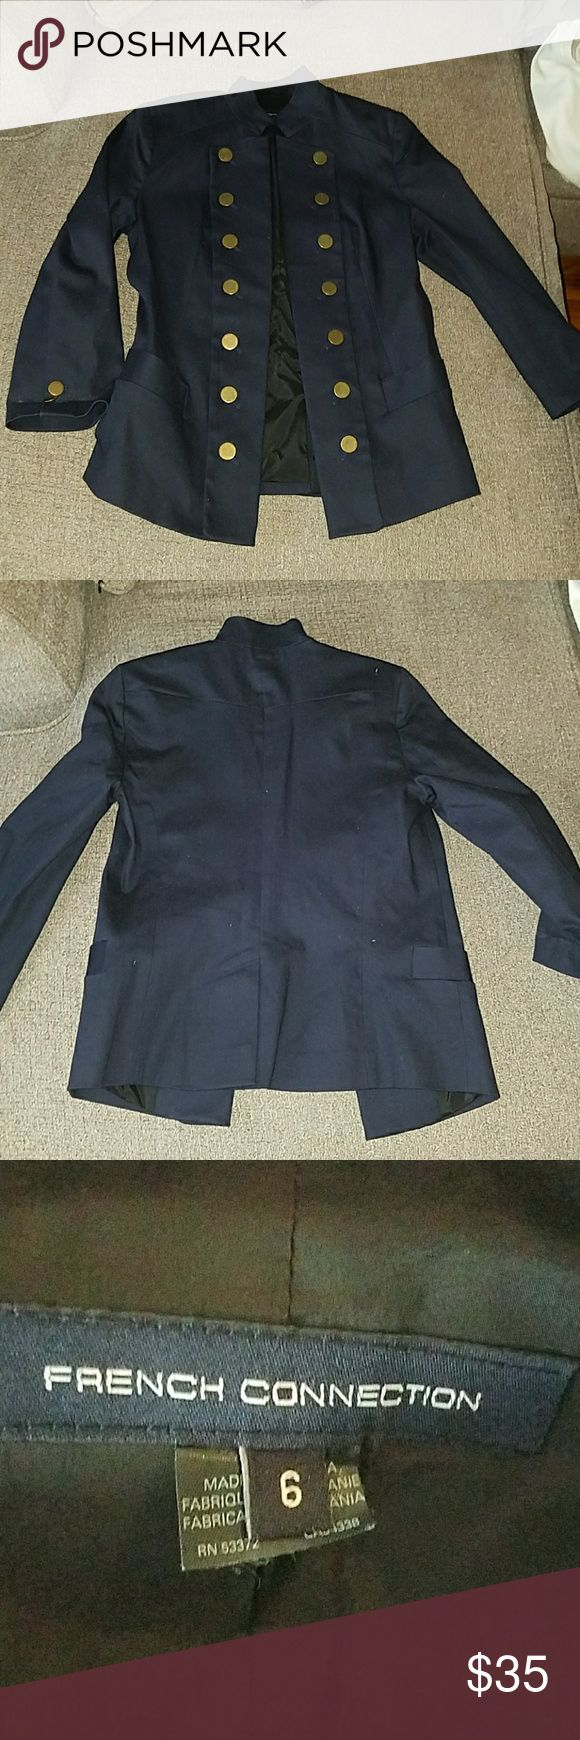 French Connection military jacket Size 6 Navy blue Lined Bronze buttons  Thick material  Free beauty gift with every purchase Jackets & Coats Blazers